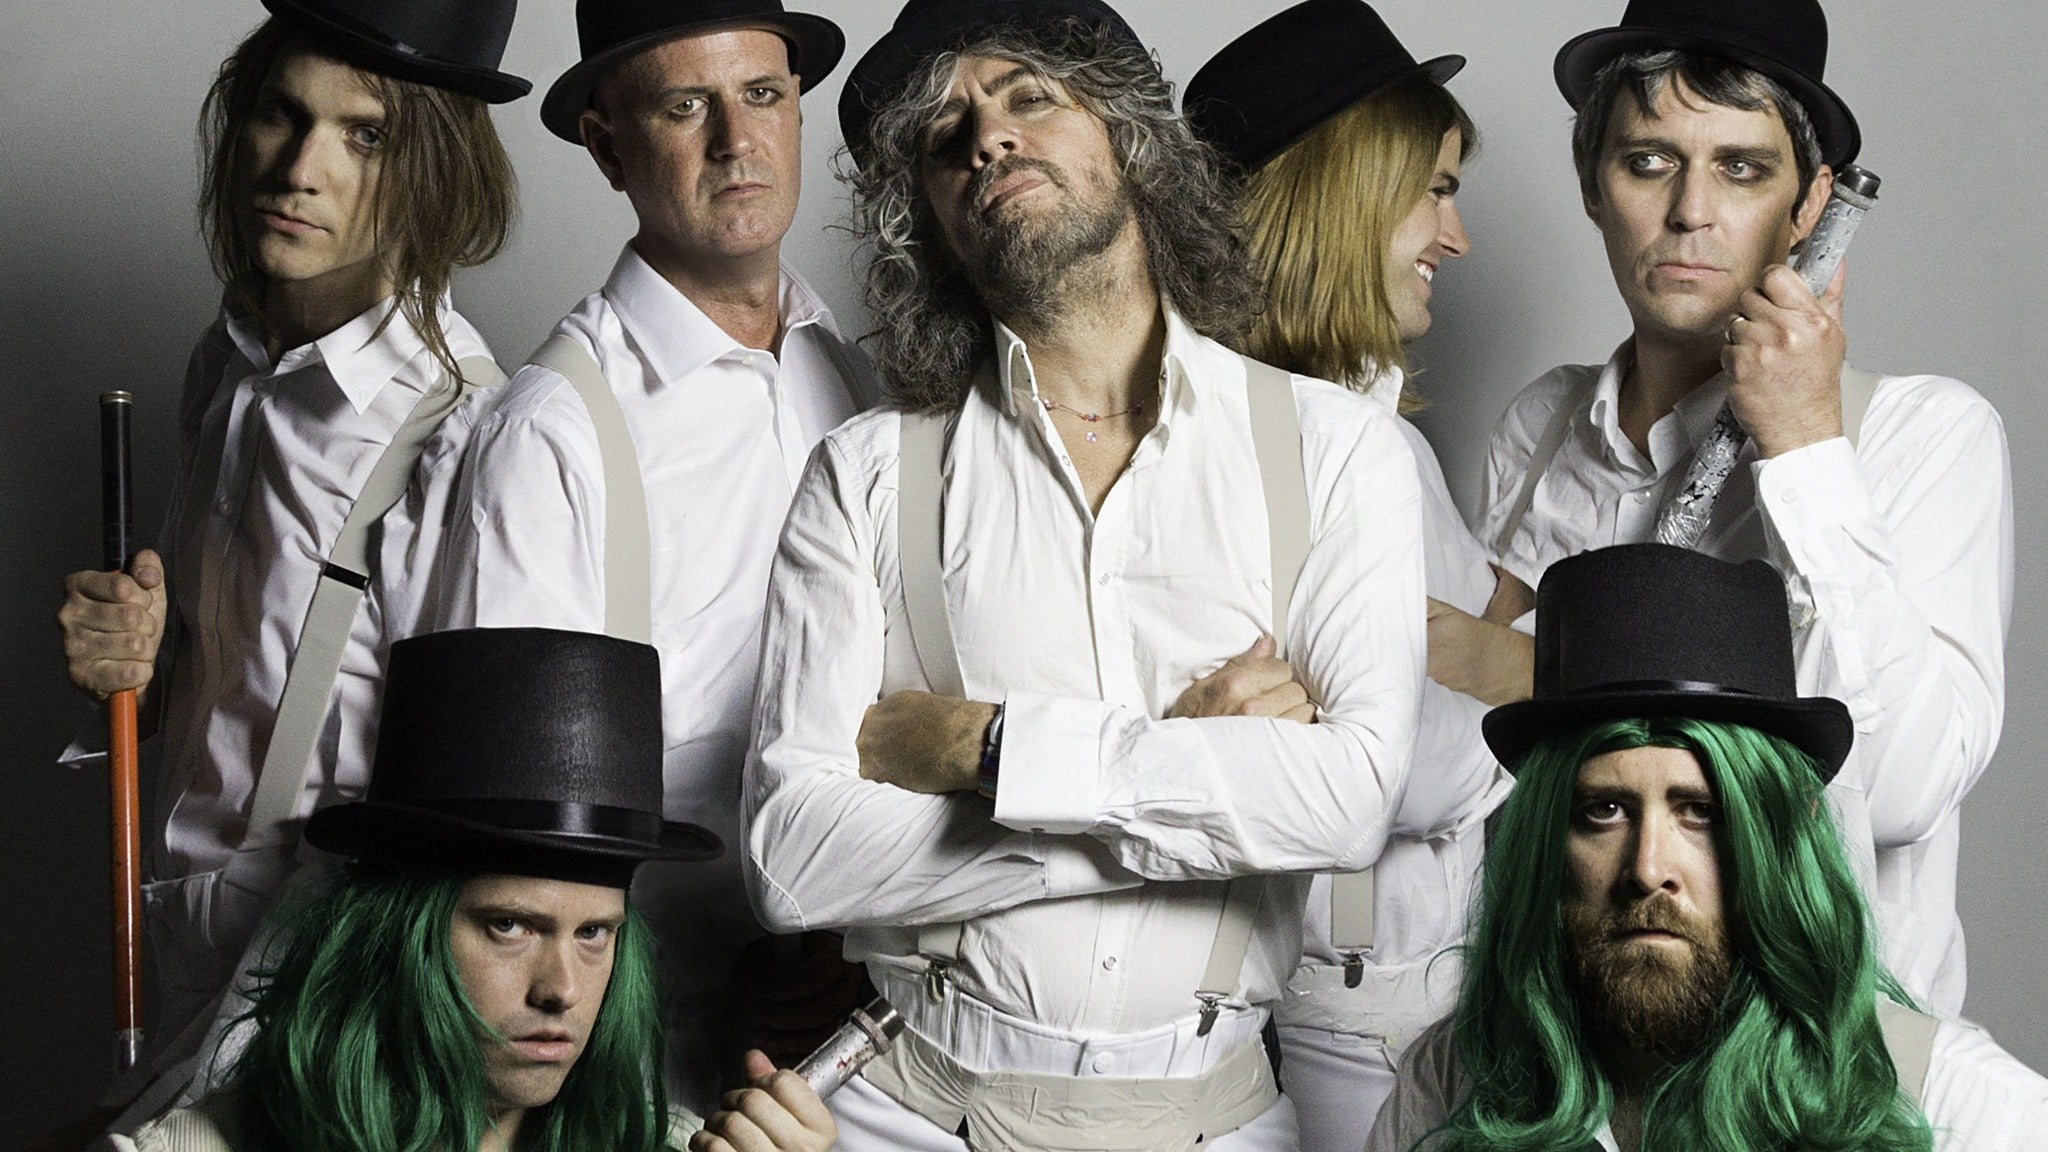 89.9 KCRW Presents The Flaming Lips at The Wiltern